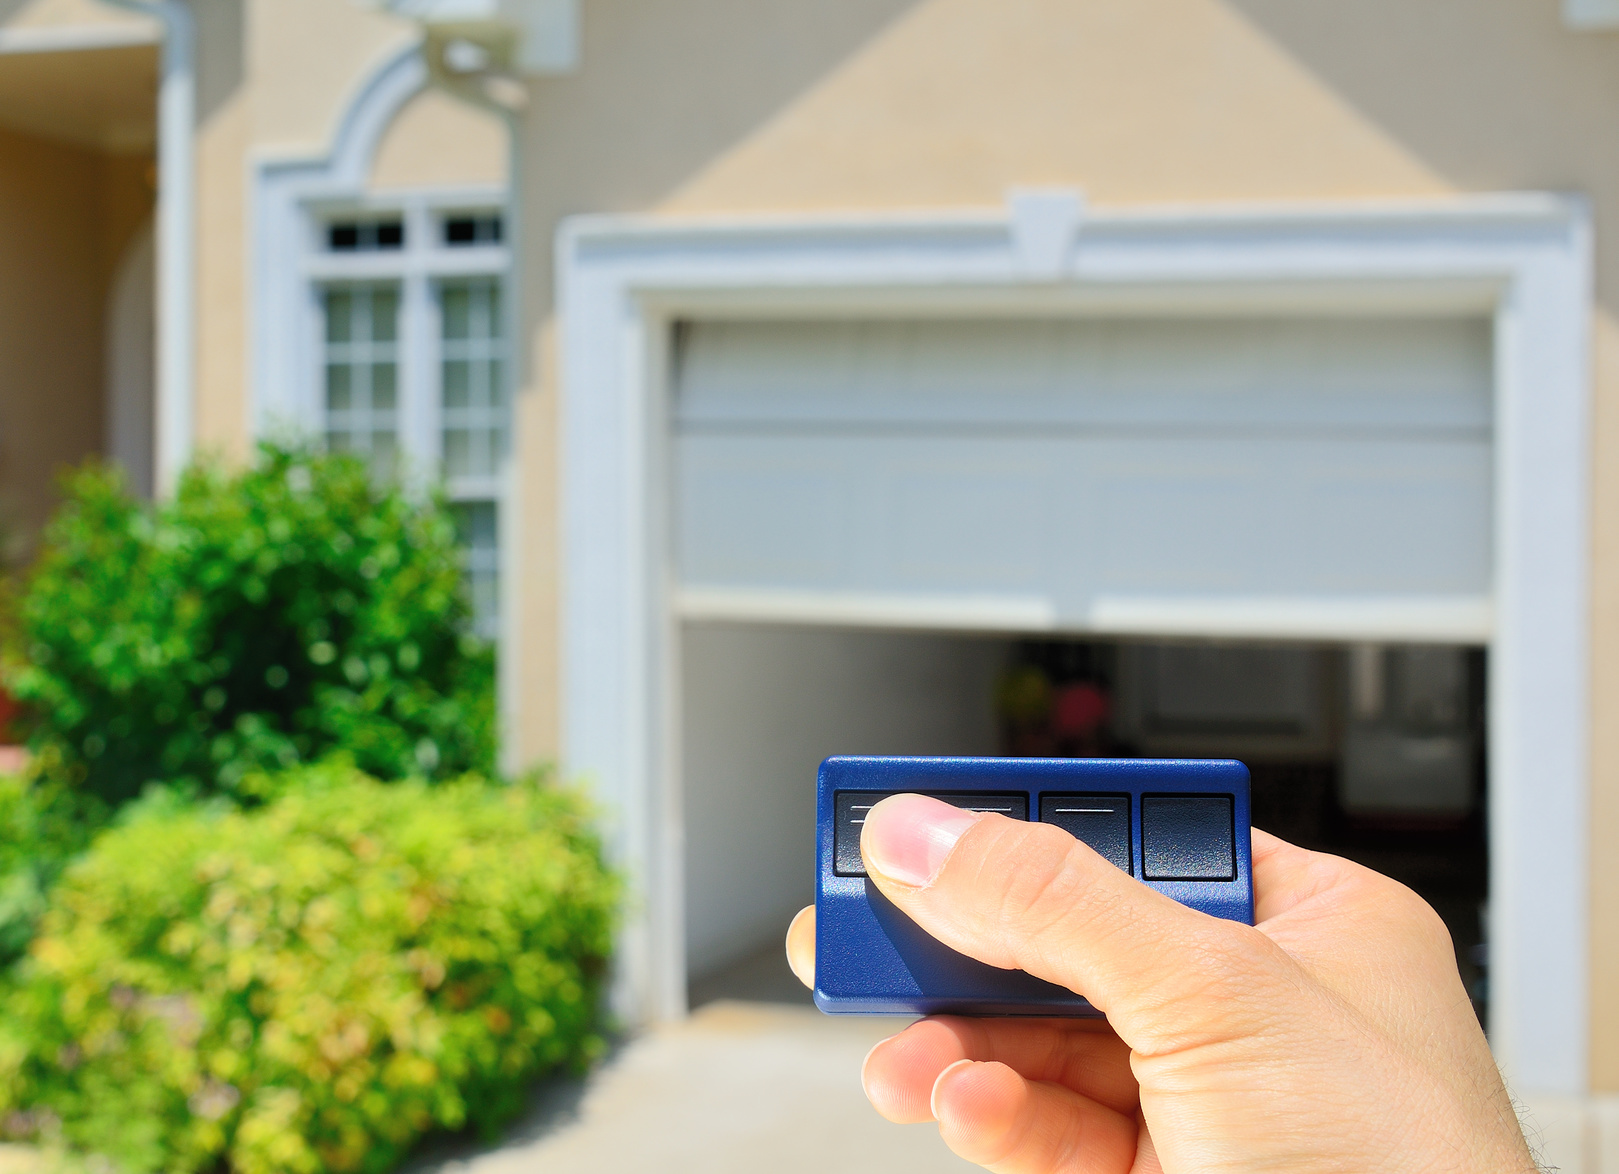 garage door opener opening a residential garage door